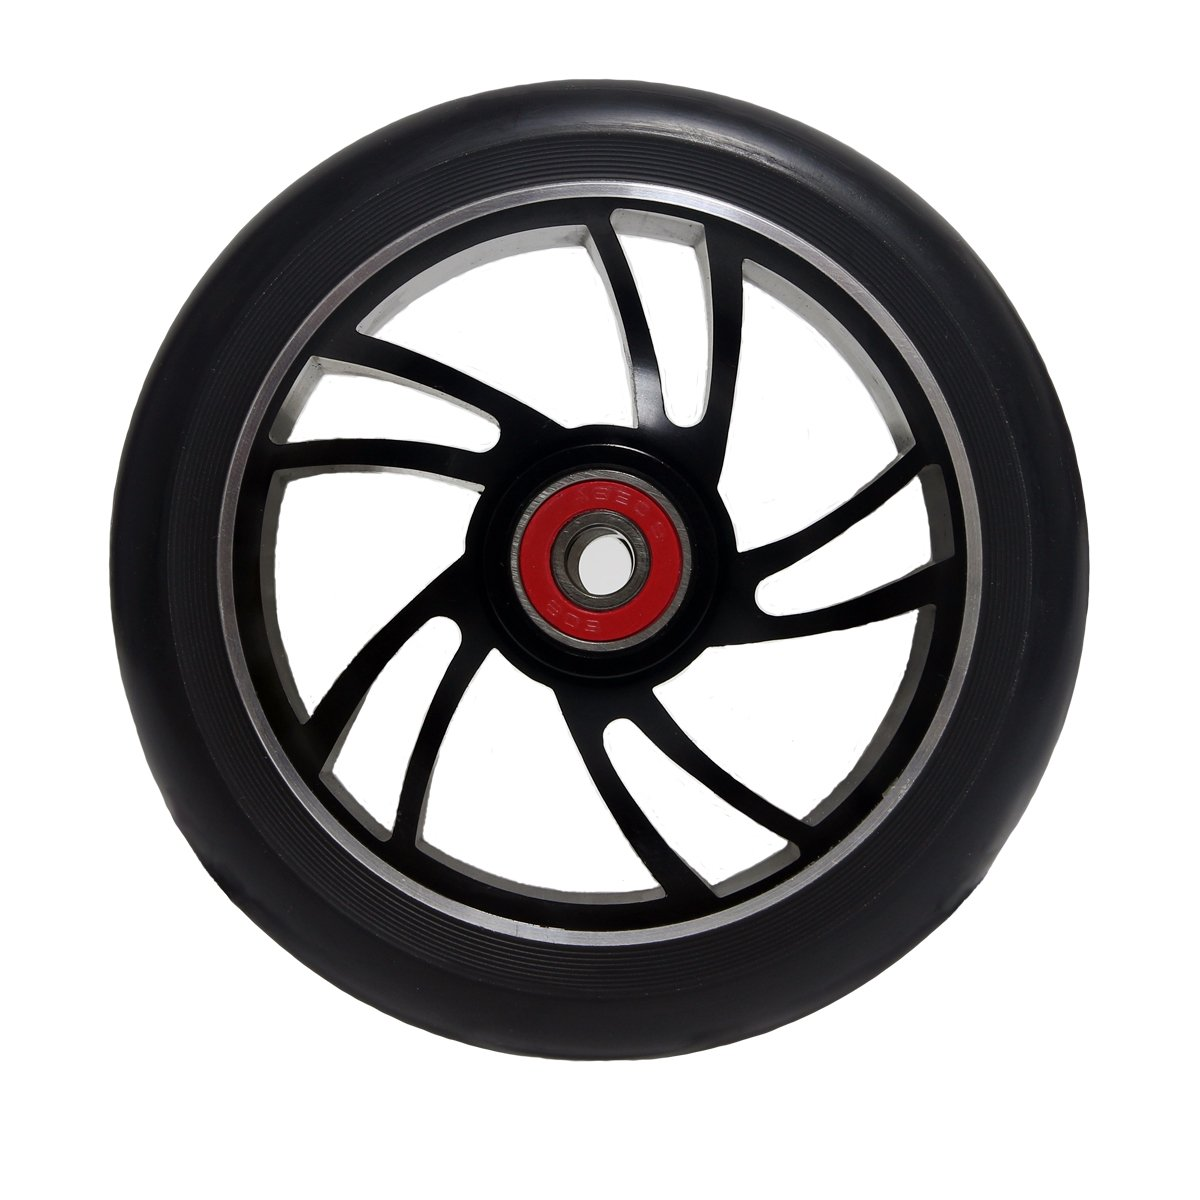 Z-FIRST 2Pcs 120mm Pro Scooter Wheels with ABEC 9 Bearings for MGP/Razor/Lucky Pro Scooters (6 Spoke) (A-Black)